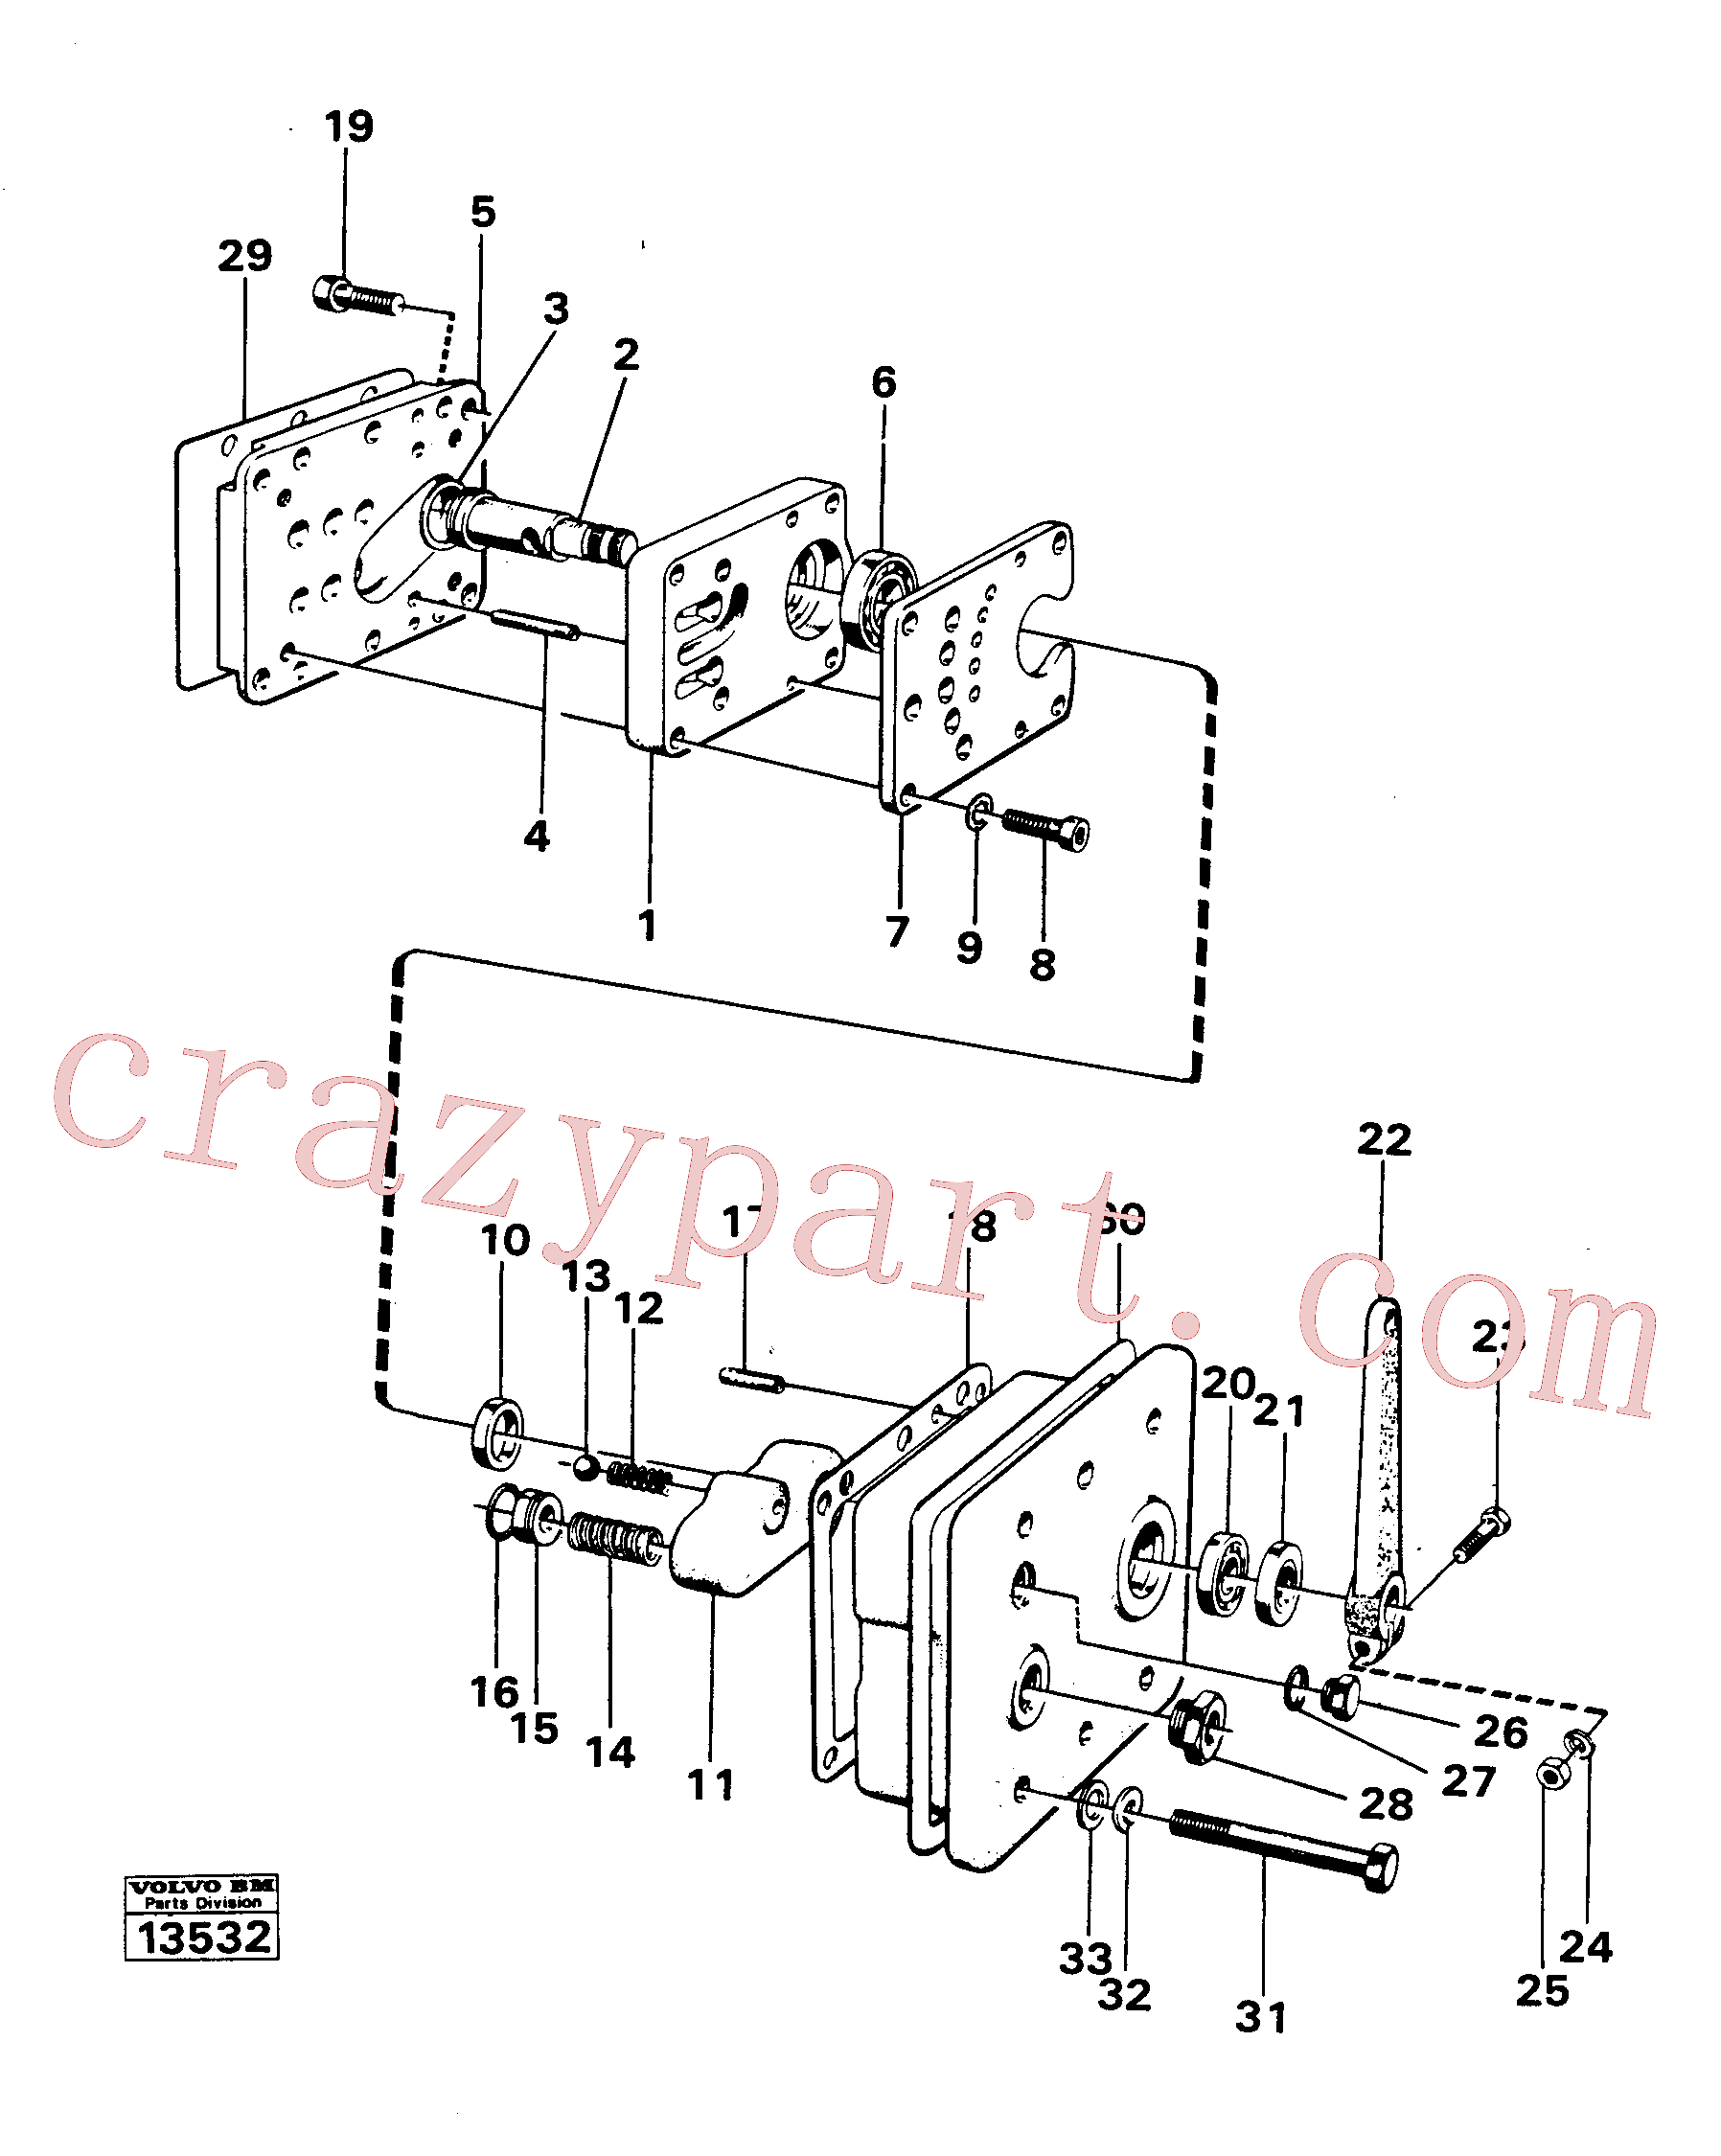 VOE958225 for Volvo Gear selector valve(13532 assembly)